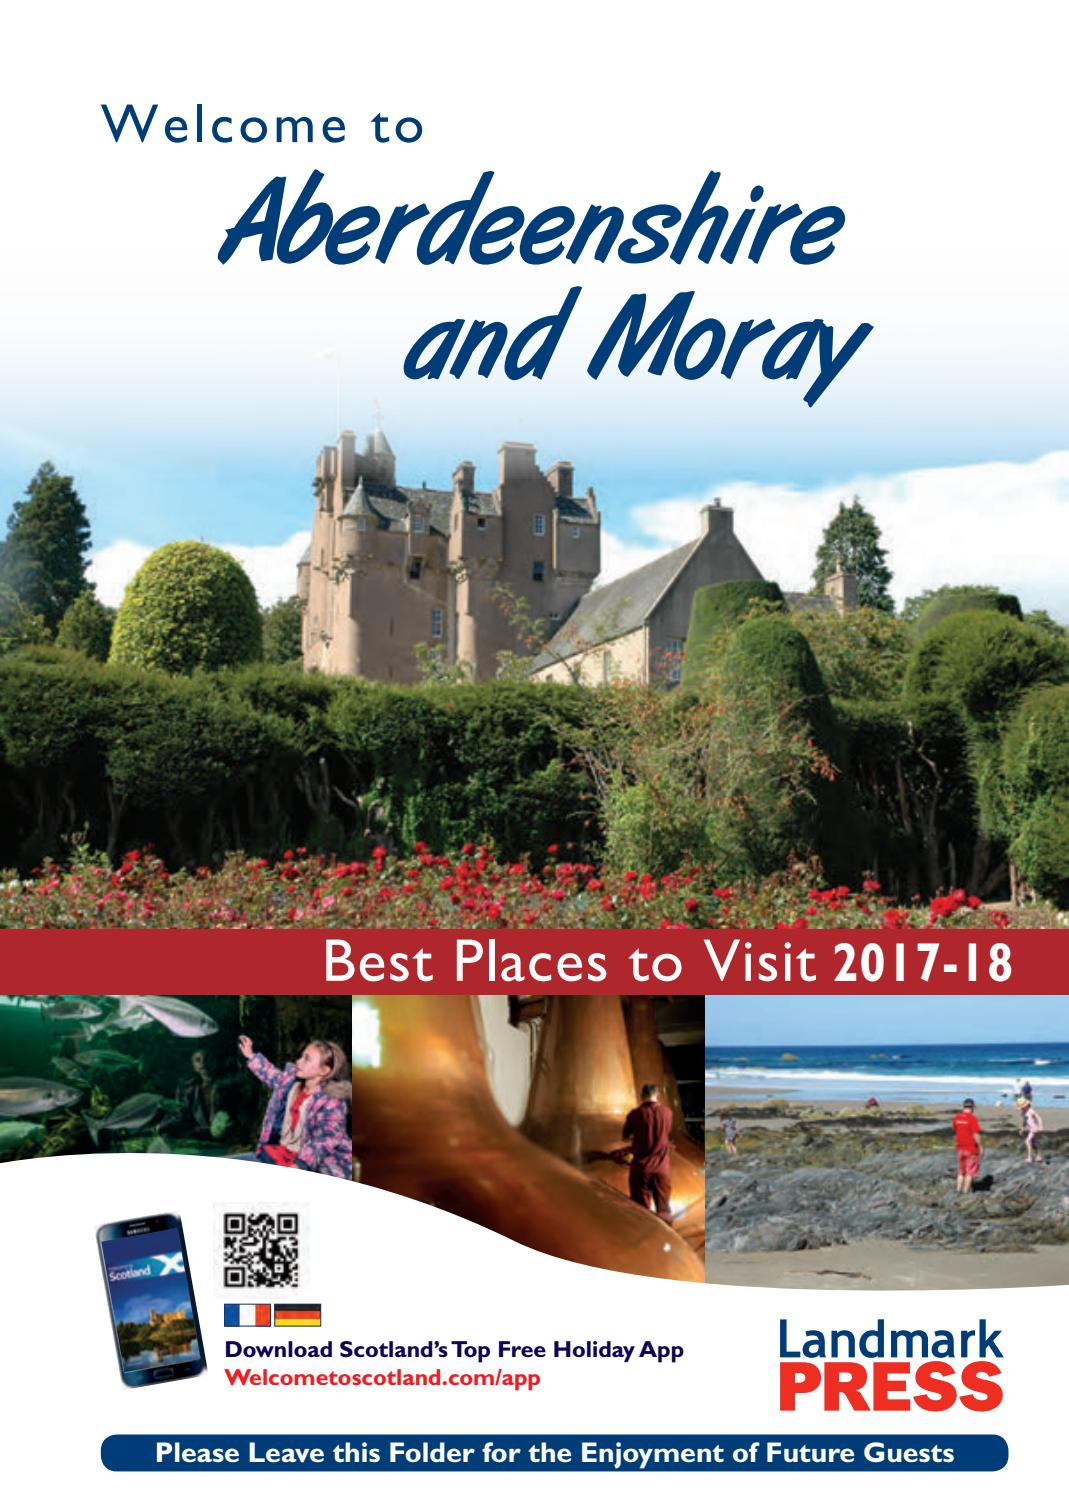 Welcome to Aberdeen and Moray 2017-18 by Landmark Press - issuu